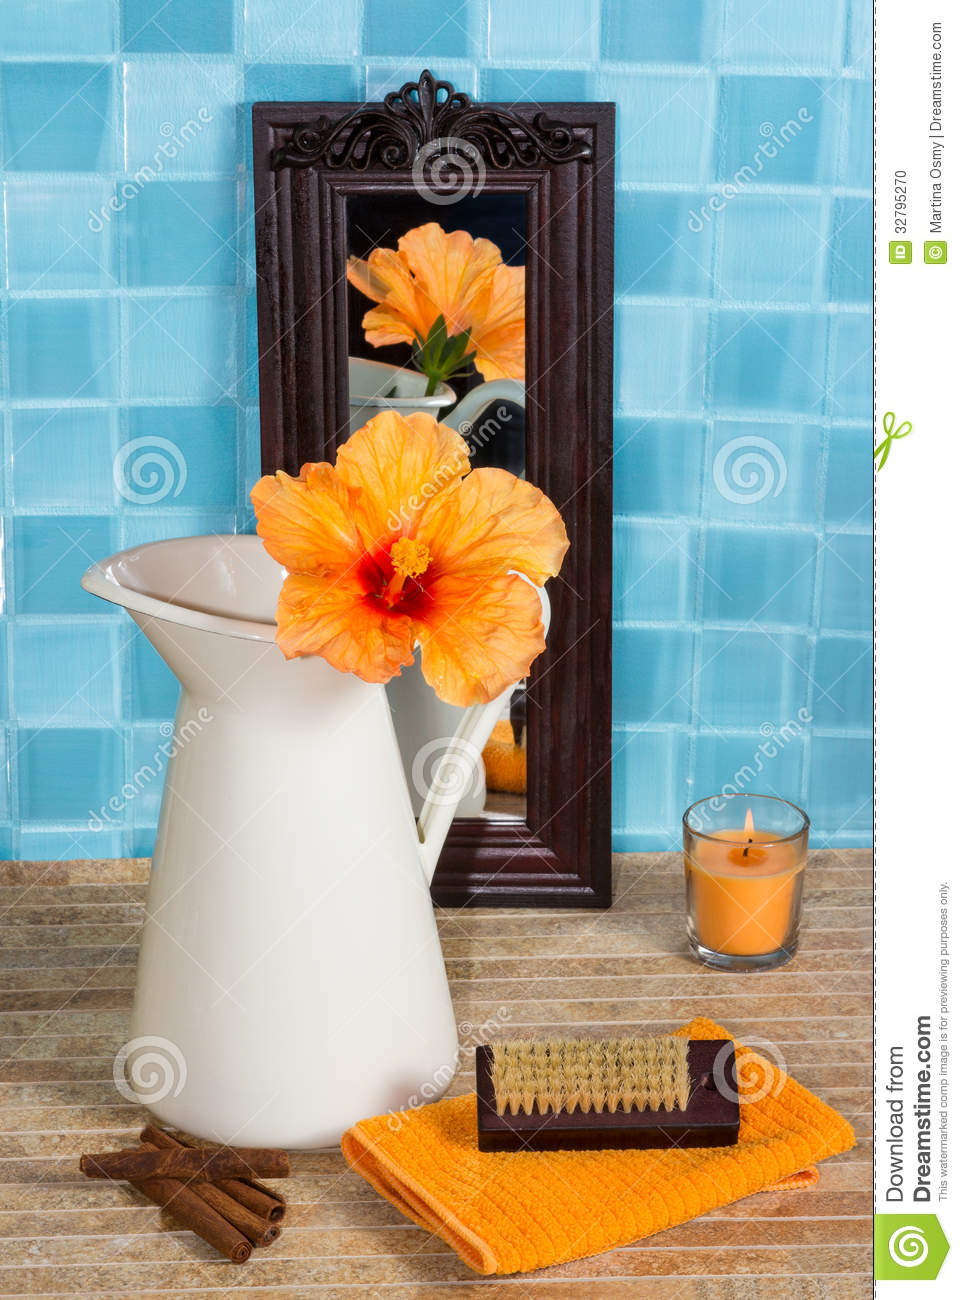 Bathroom Still Life With Hibiscus Flower In A Jug Stock Photo